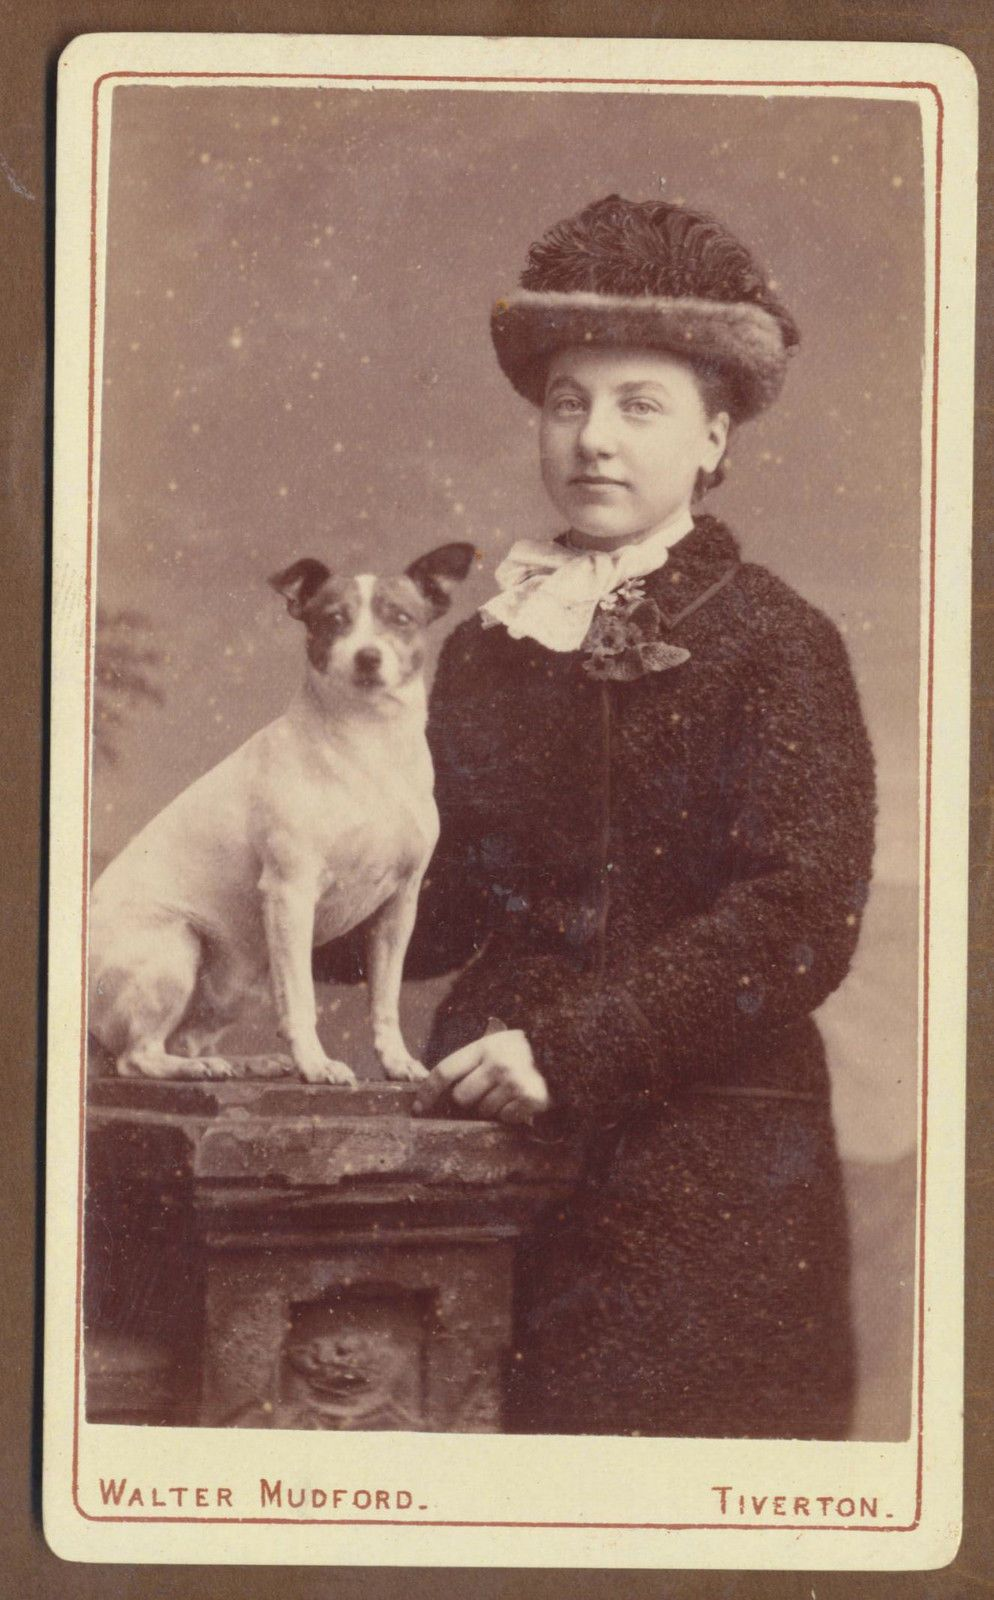 Lady with Jack Russell Dog, Mudford, Tiverton